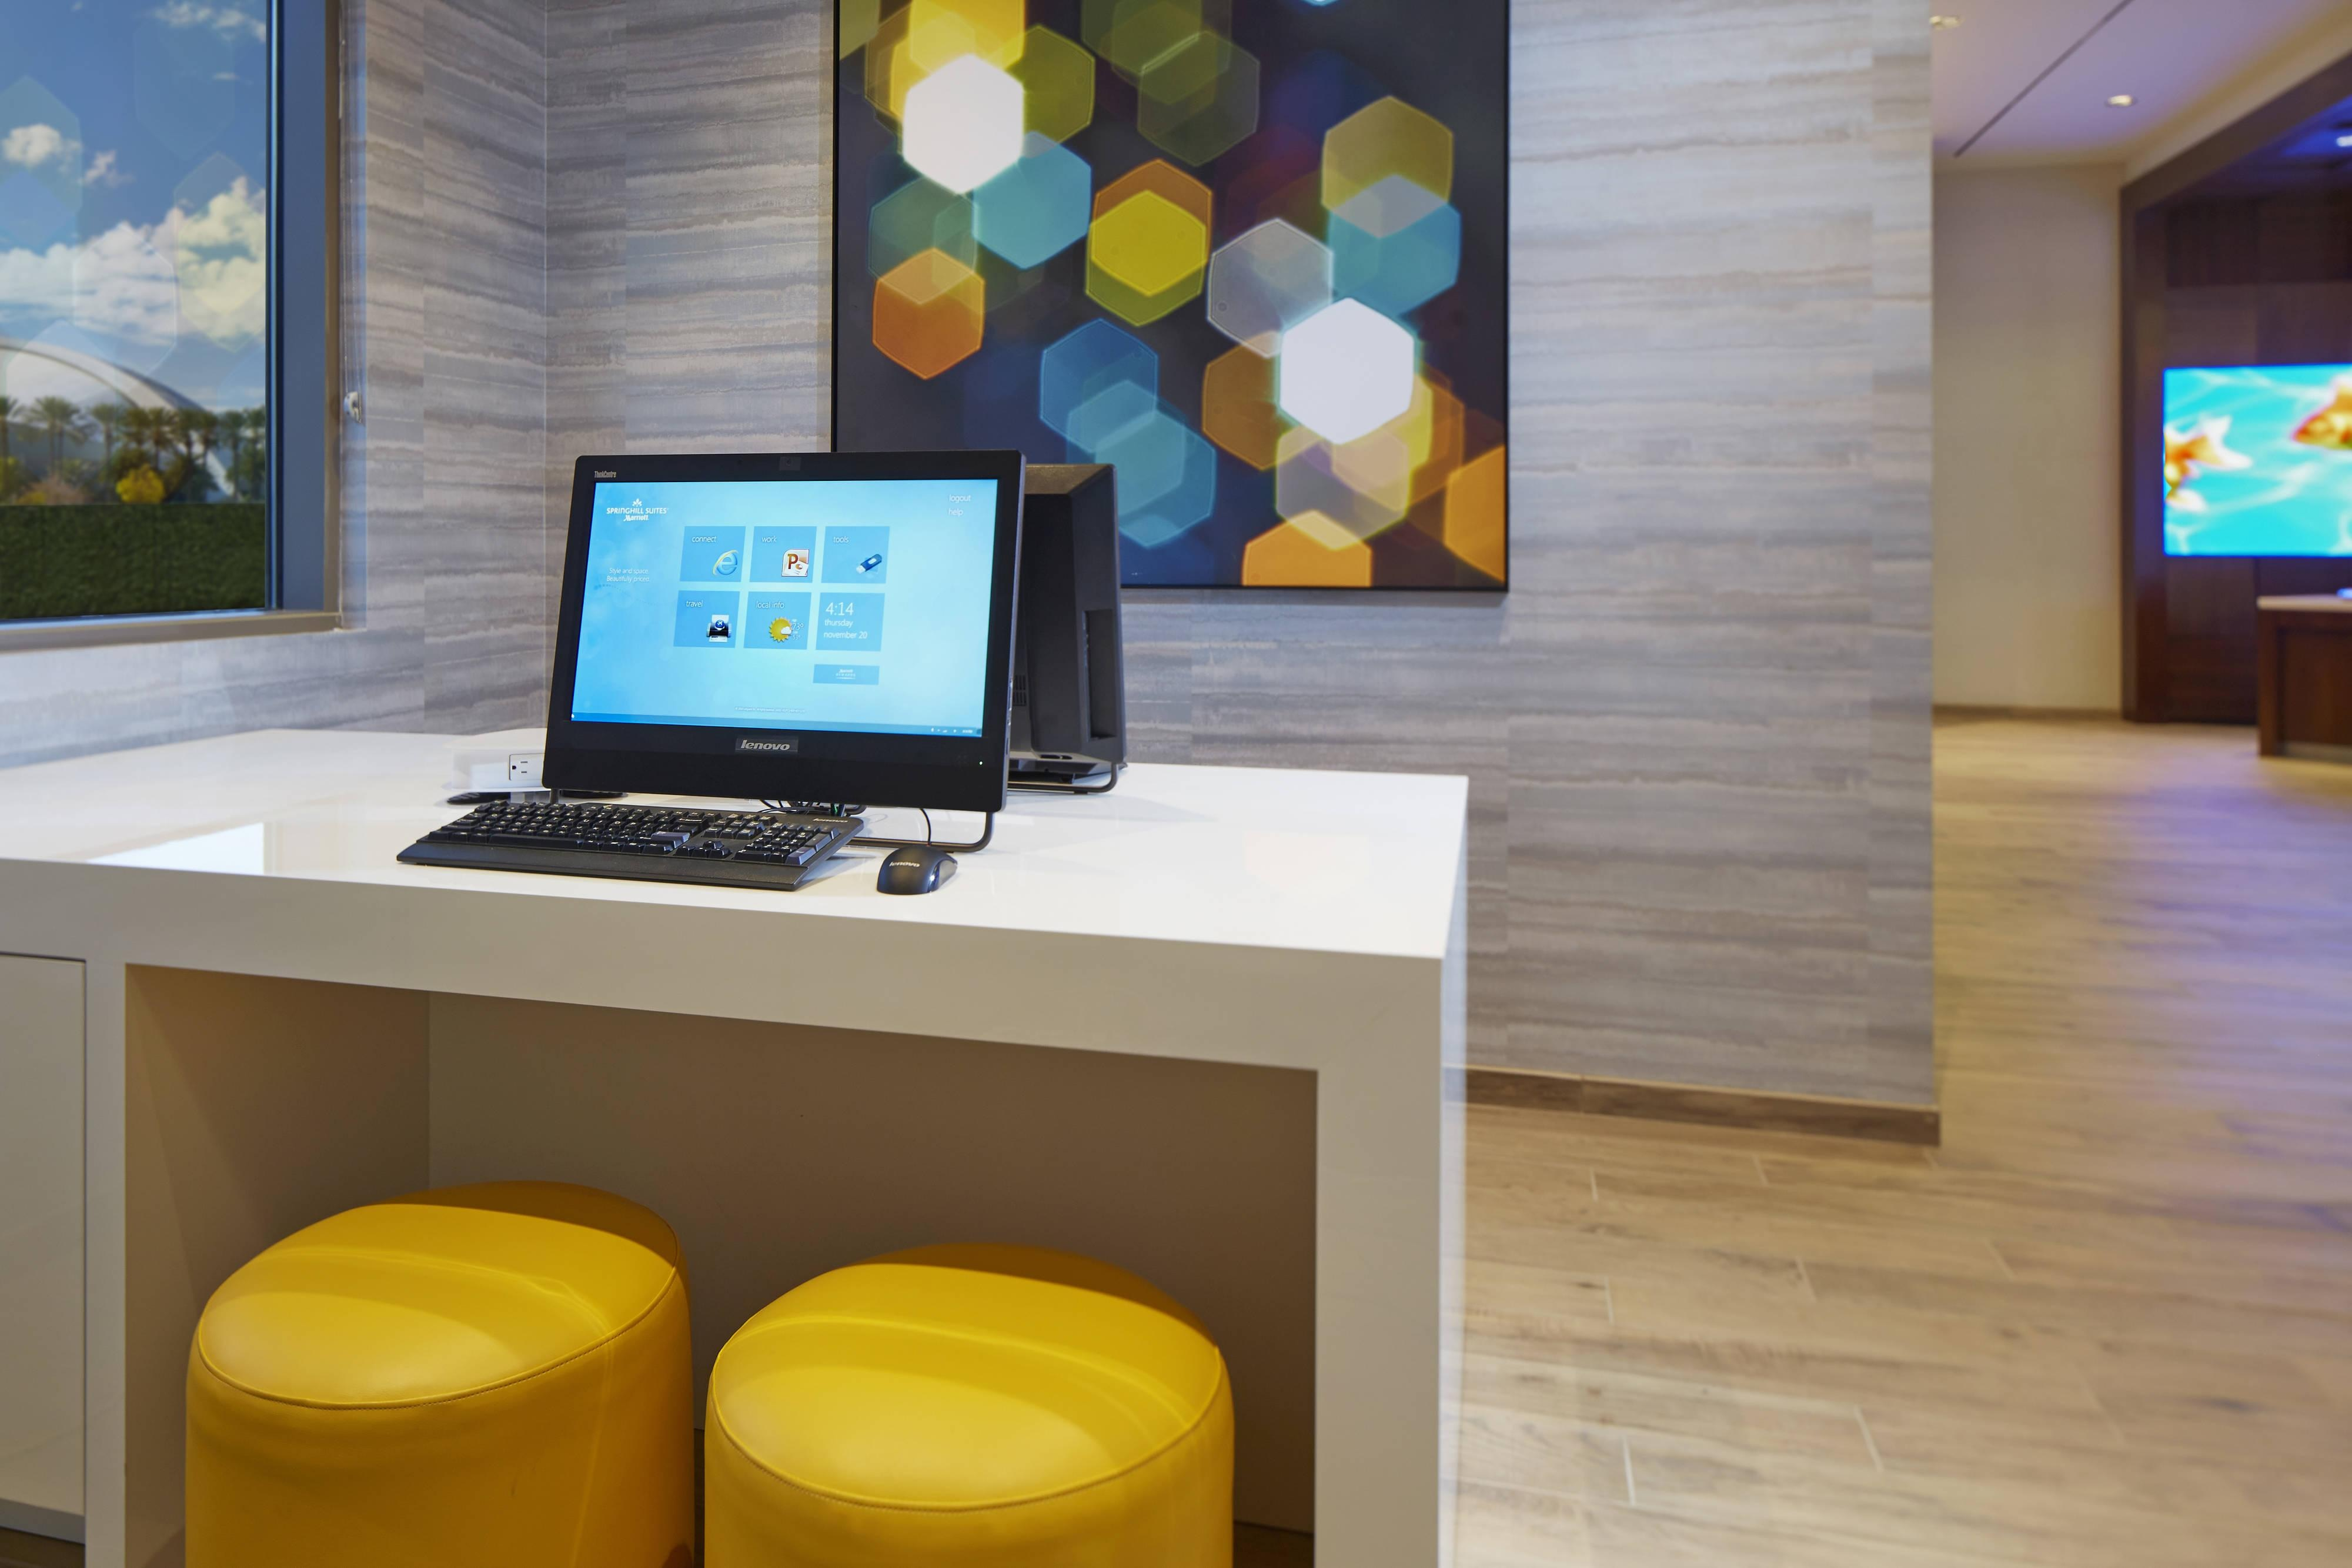 Springhill Suites Complimentary Business Center